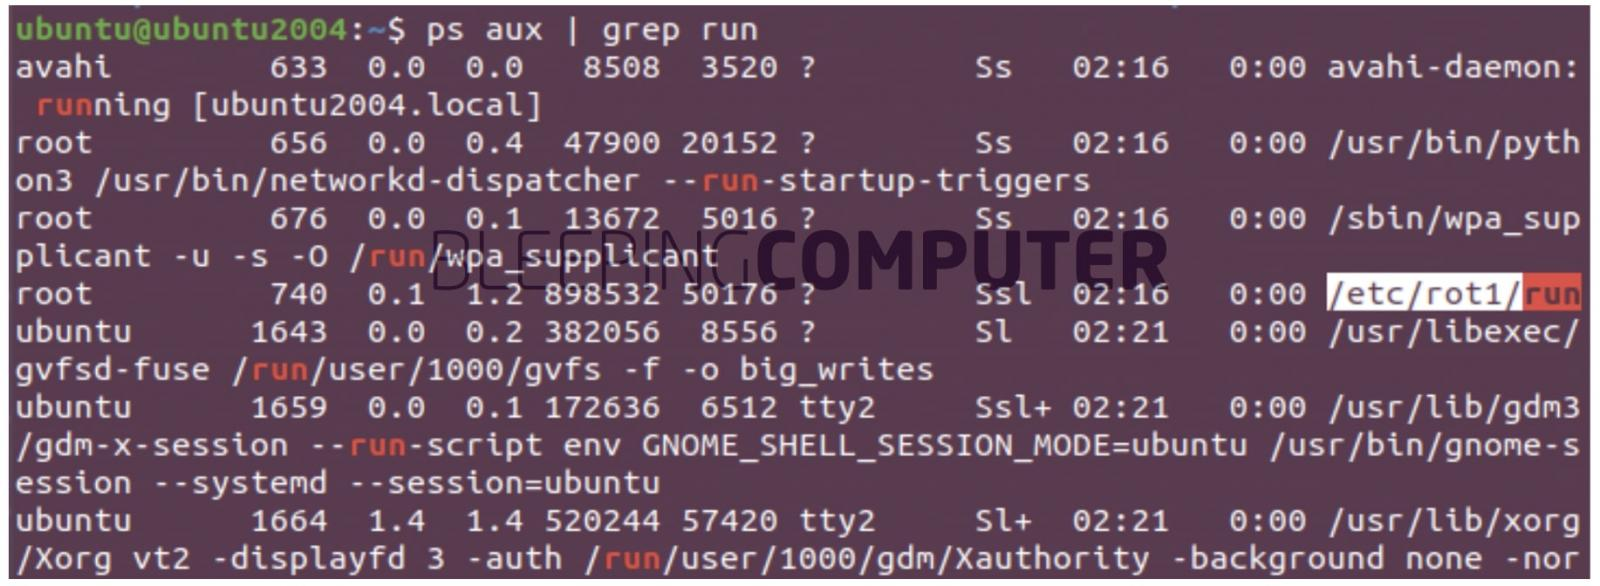 ps aux results for run executable